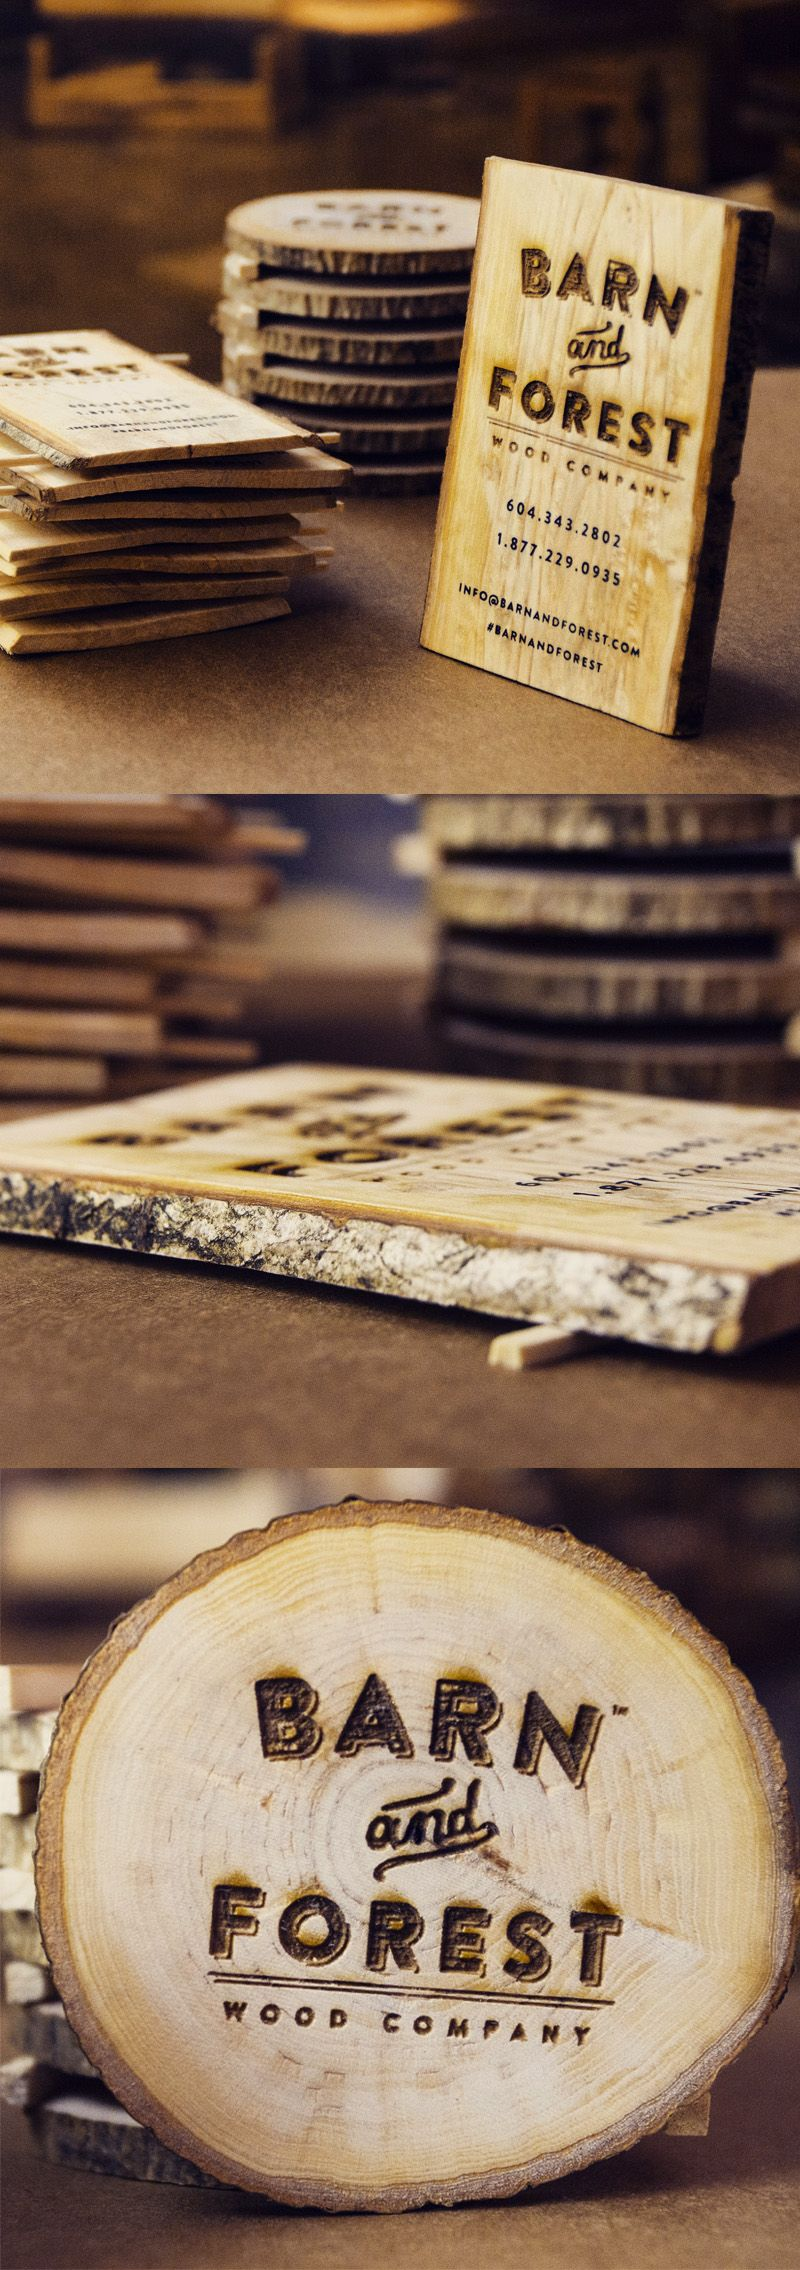 Creative Business Card Design made of Wood | Business Cards ...